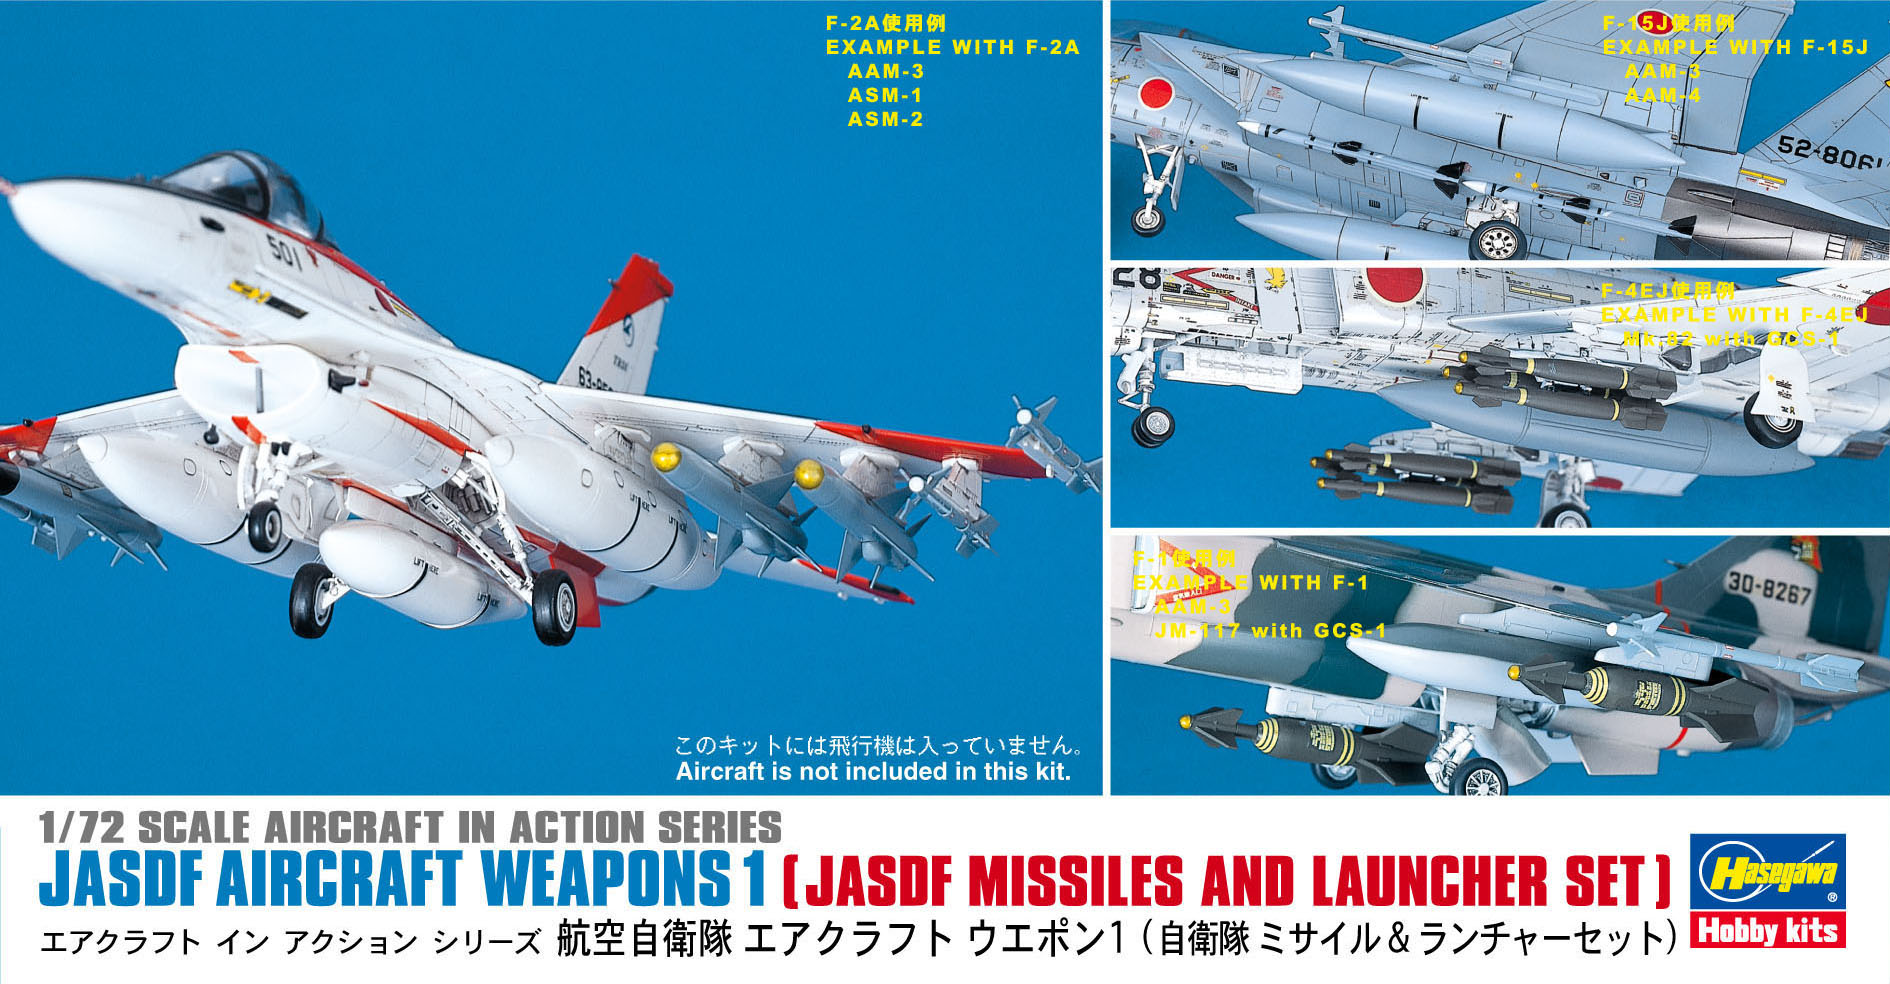 Hasegawa 1/72 J.A.S.D.F. Aircraft Weapons 1 : J.A.S.D.F. Missiles And Launcher Set